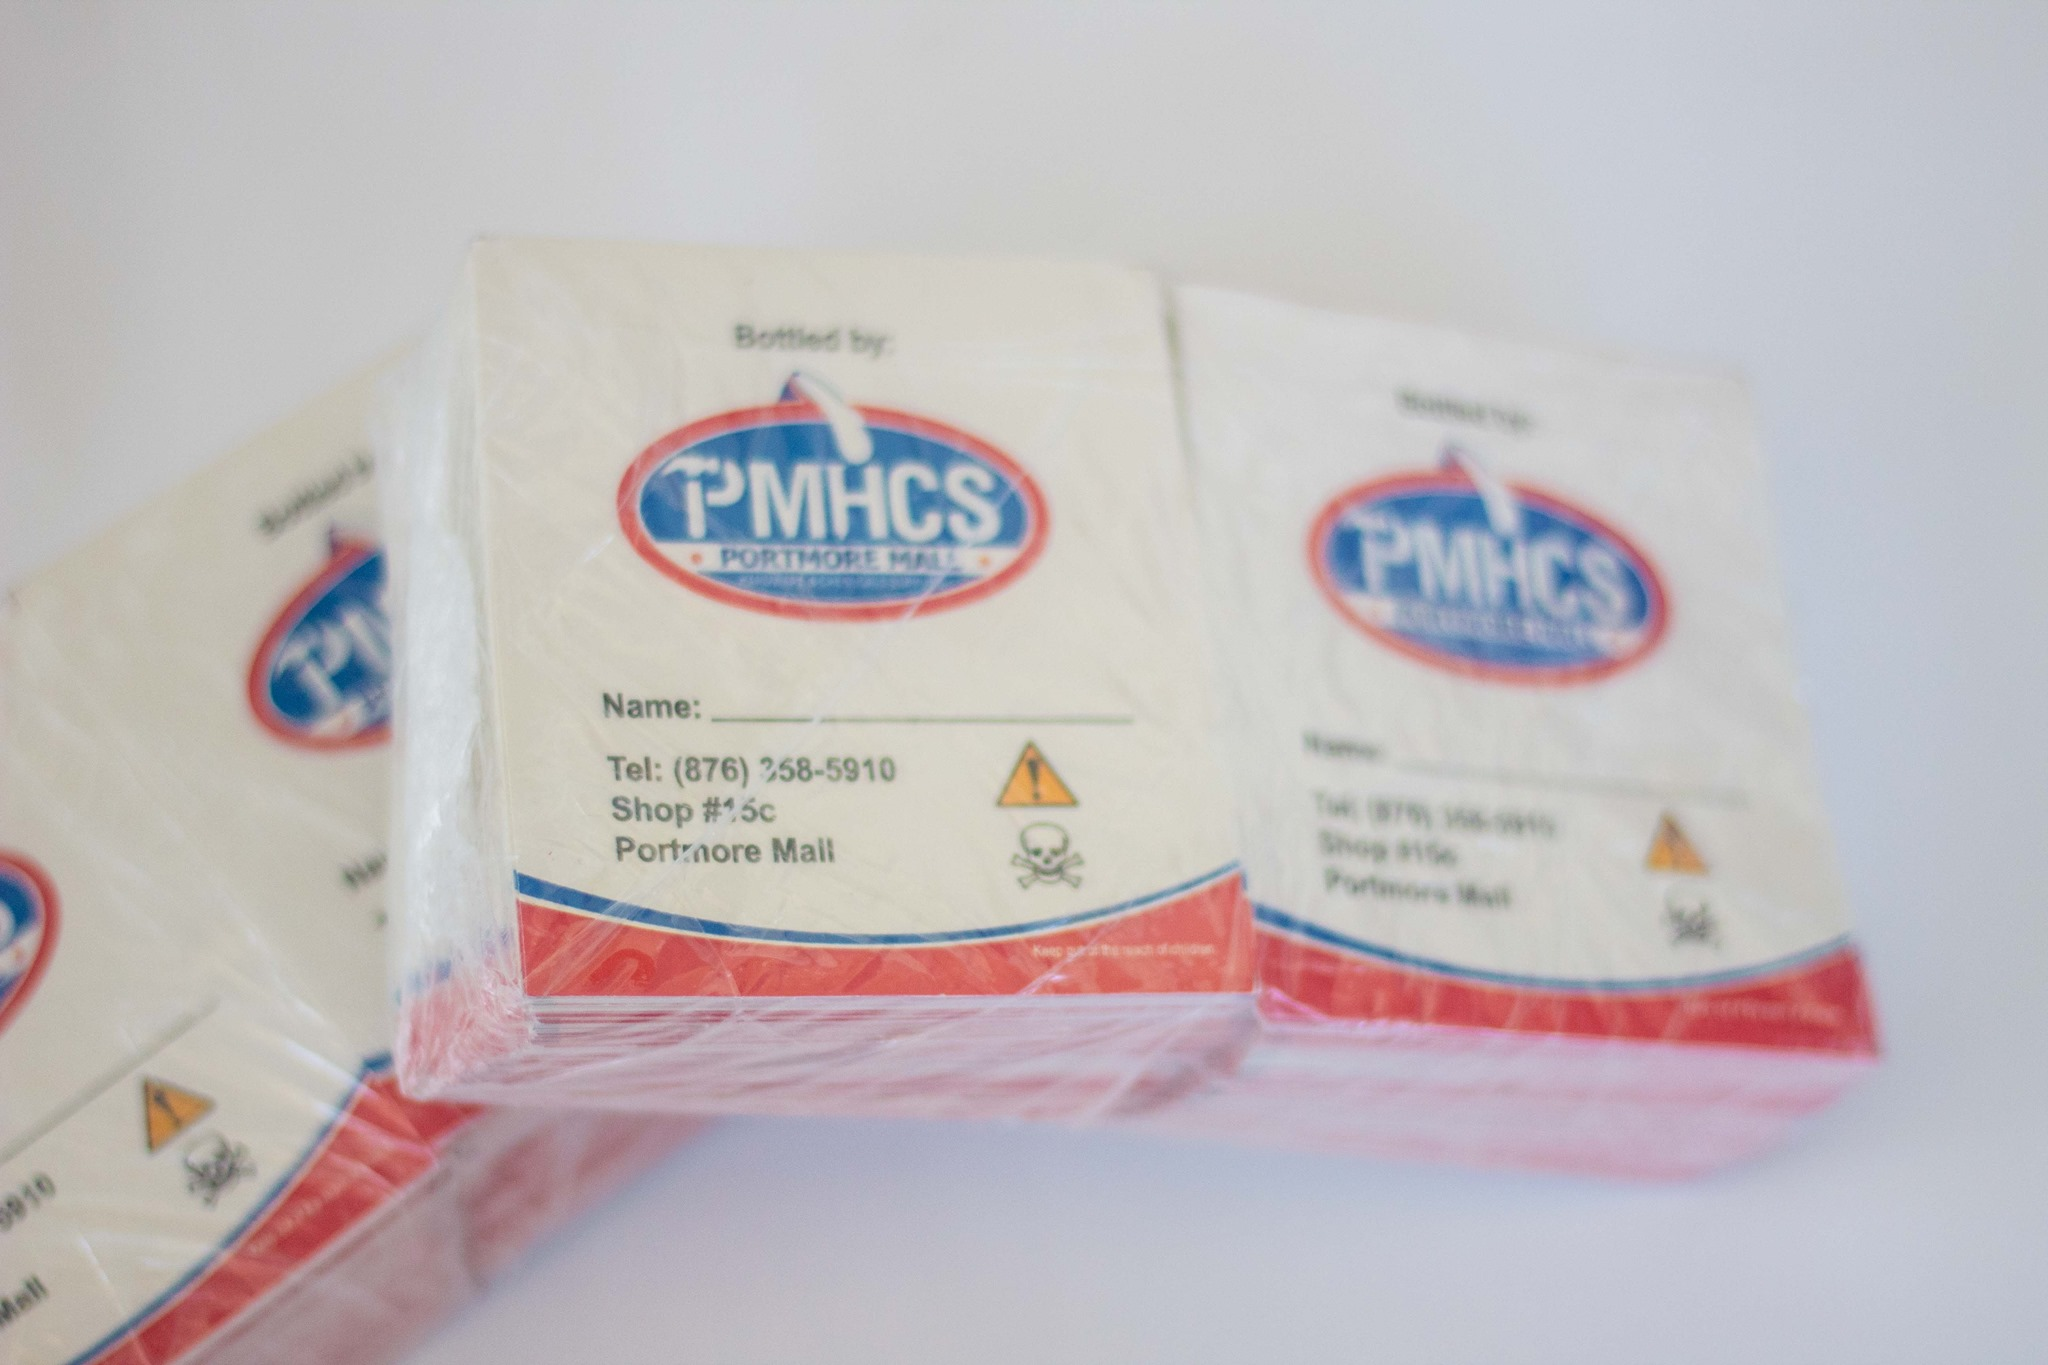 Customize any product labels to extend the brand a